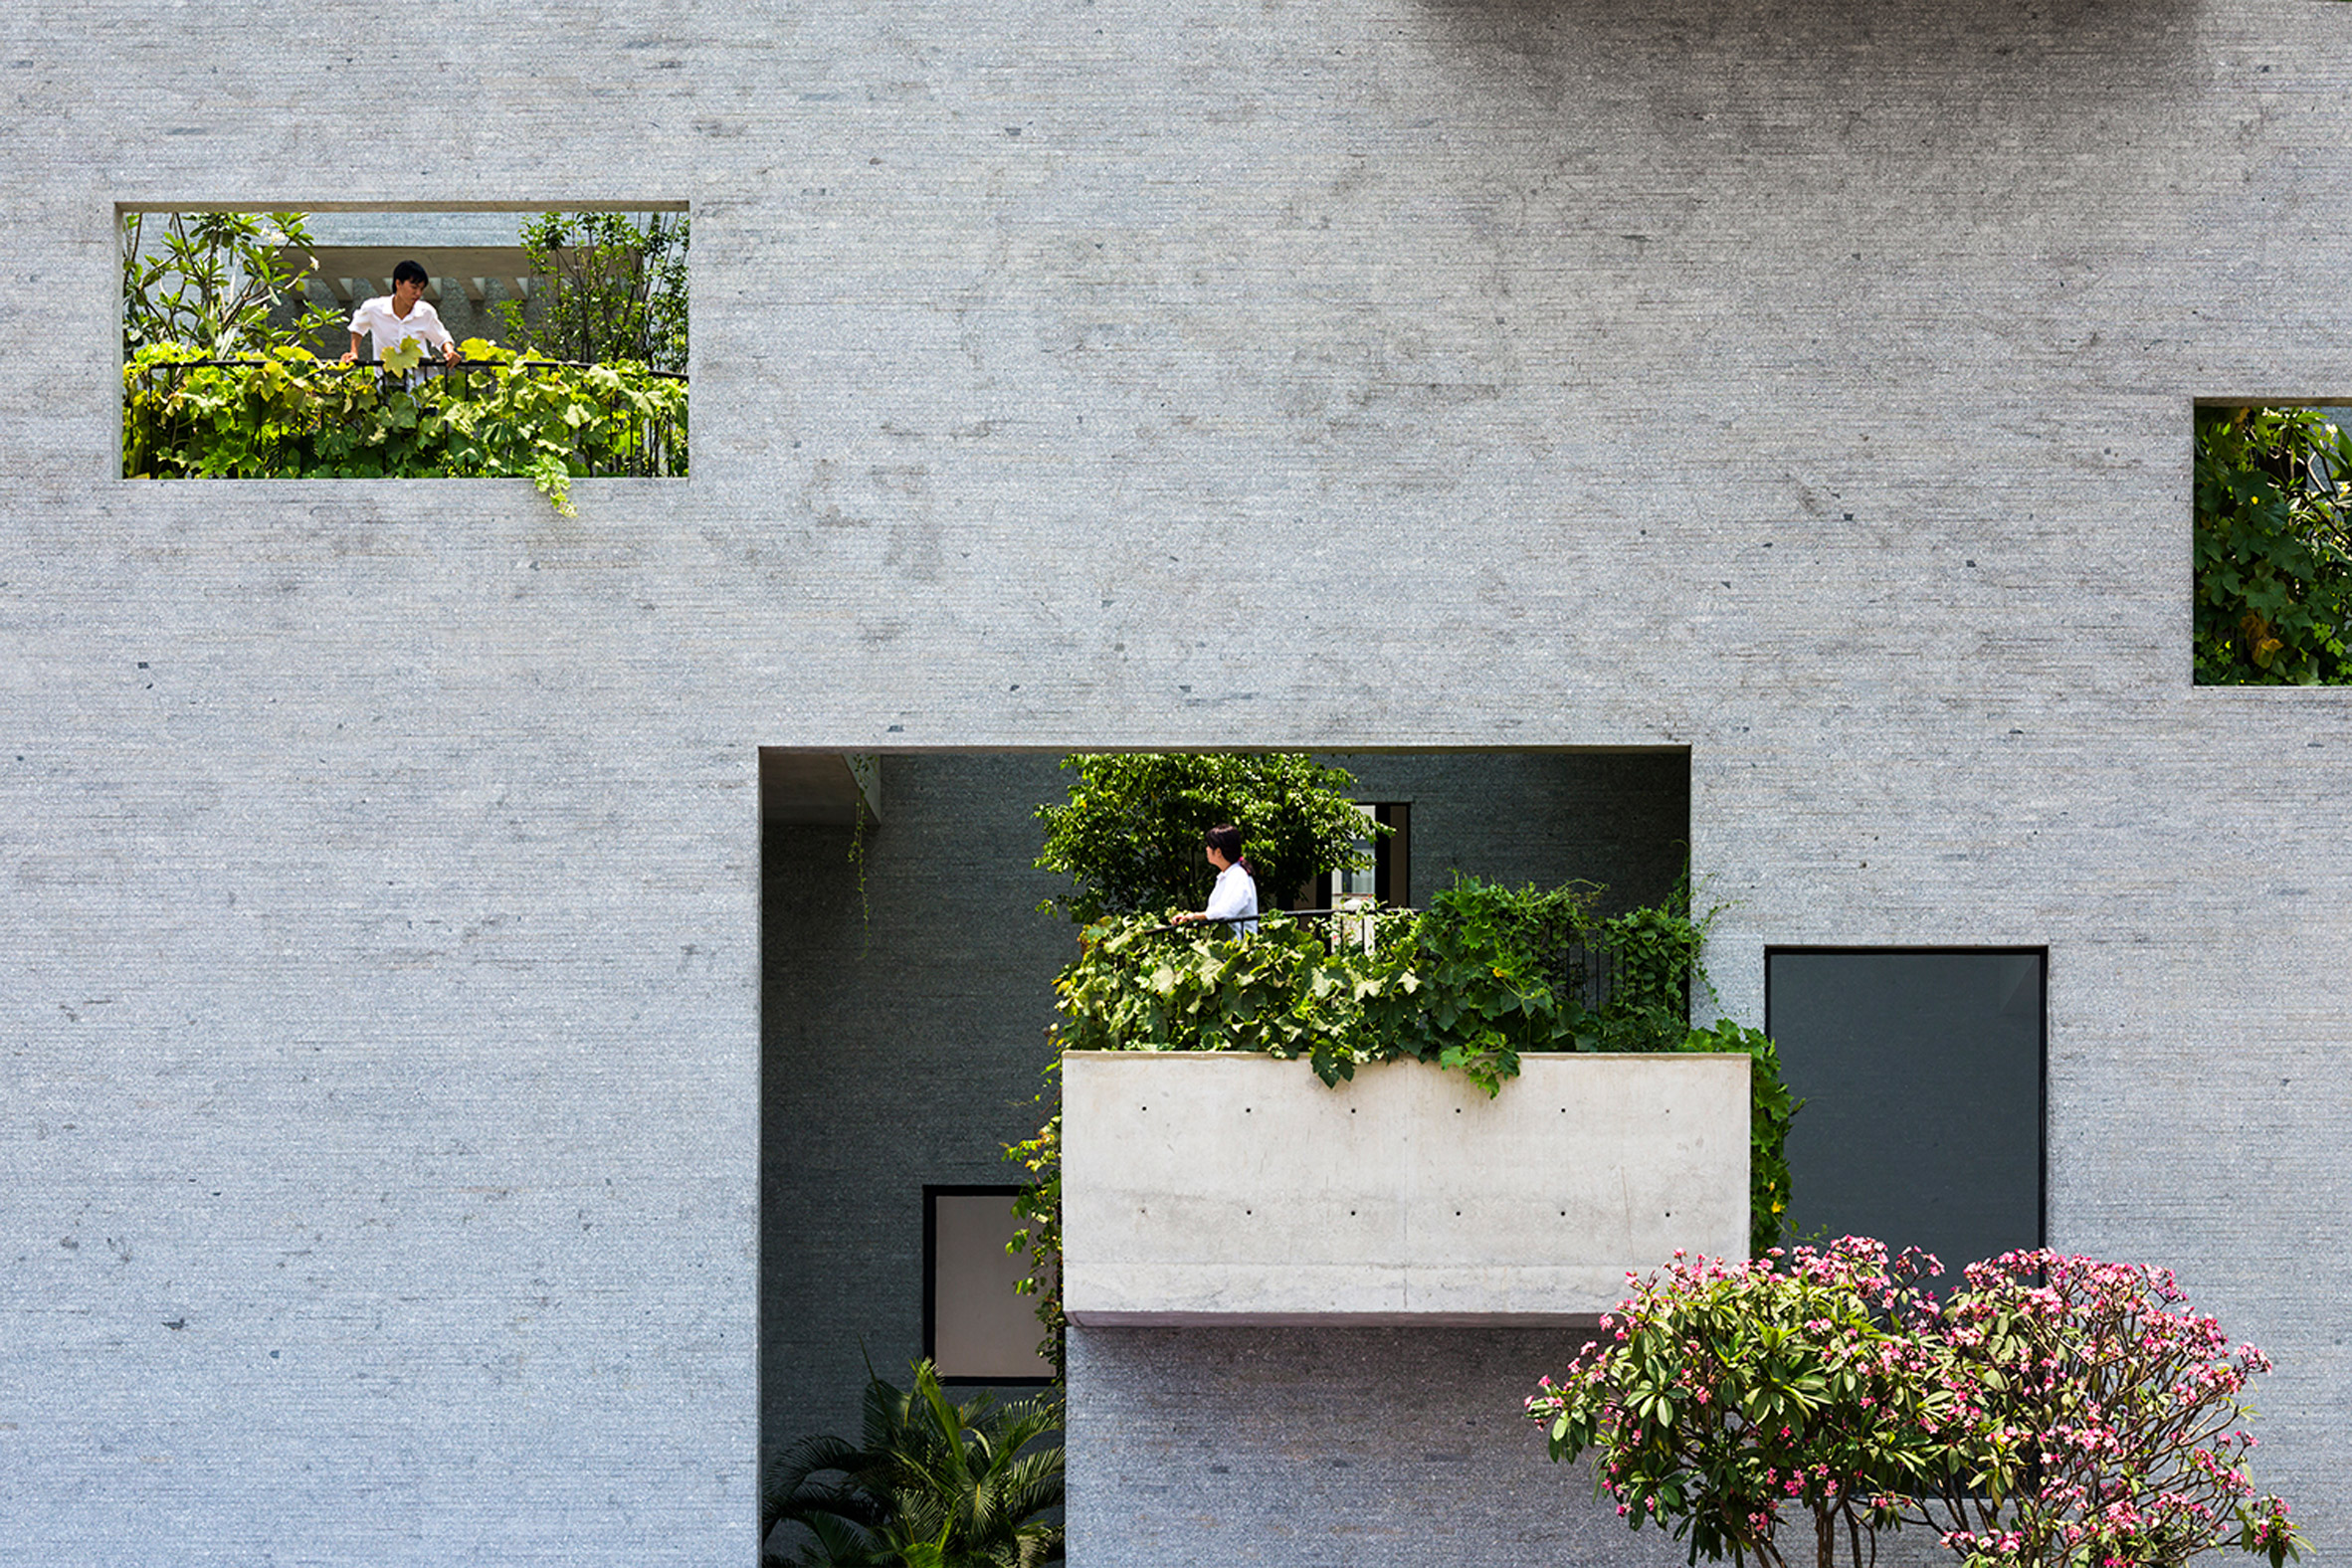 Planted terraces are interspersed among living spaces at Vo Trong Nghia's Binh House